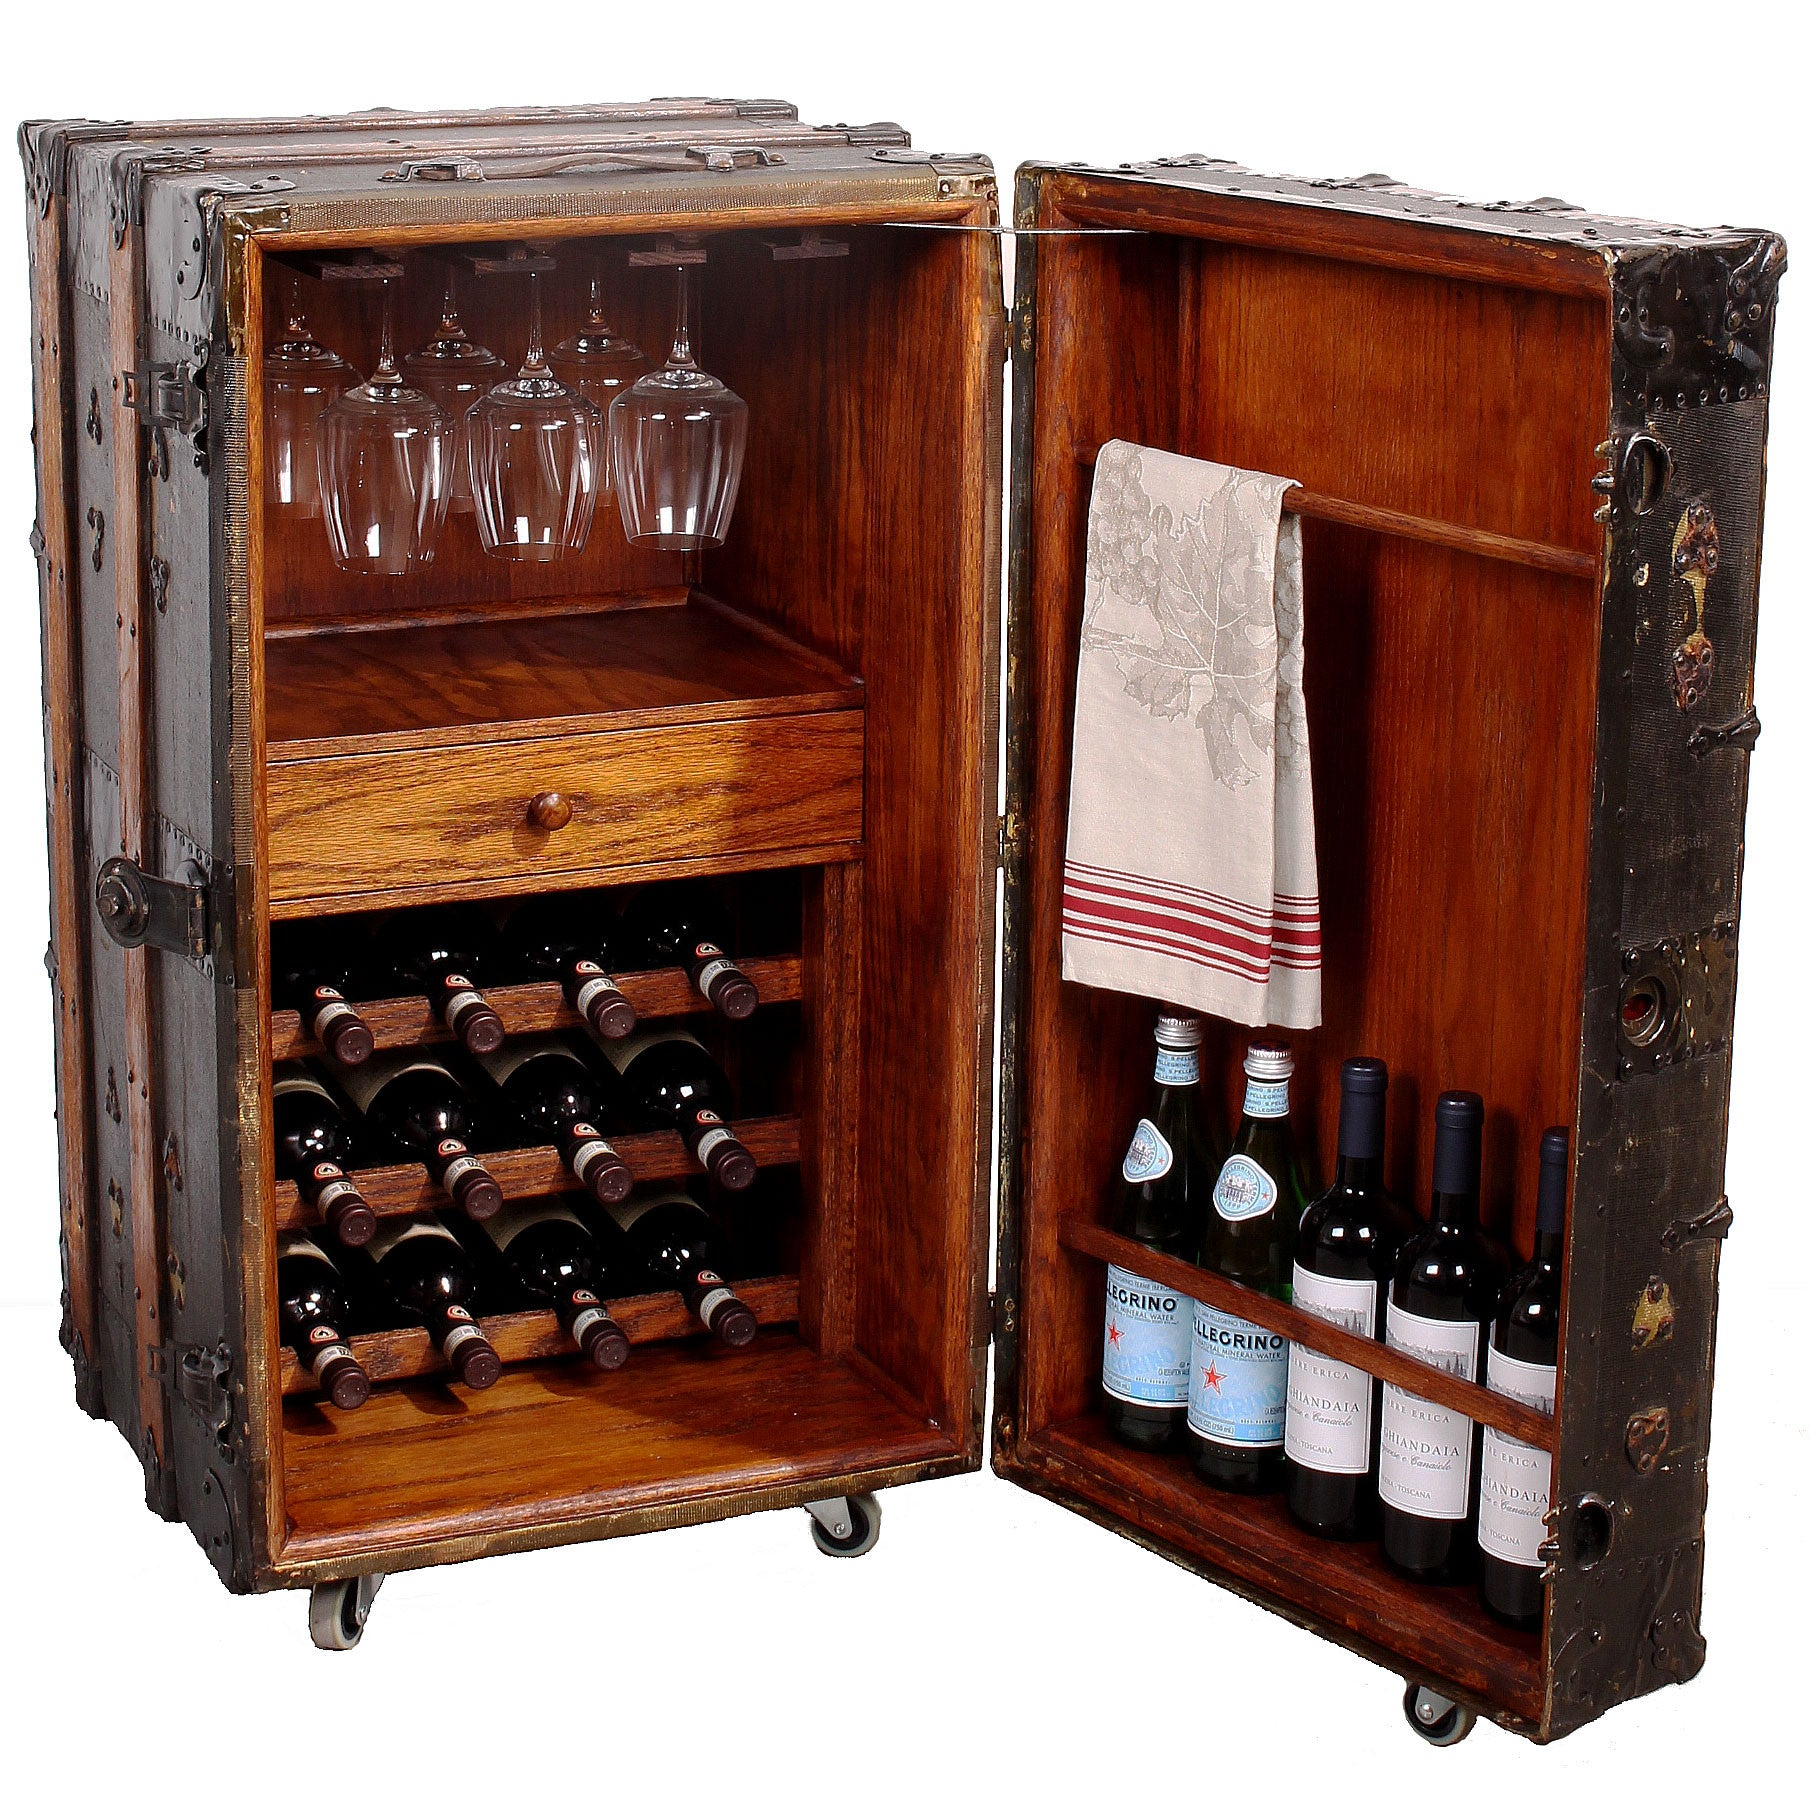 Steamer Trunk Furniture Vintage Steamer Trunk Wine Bar Cabinet Fatto A Mano Antiques